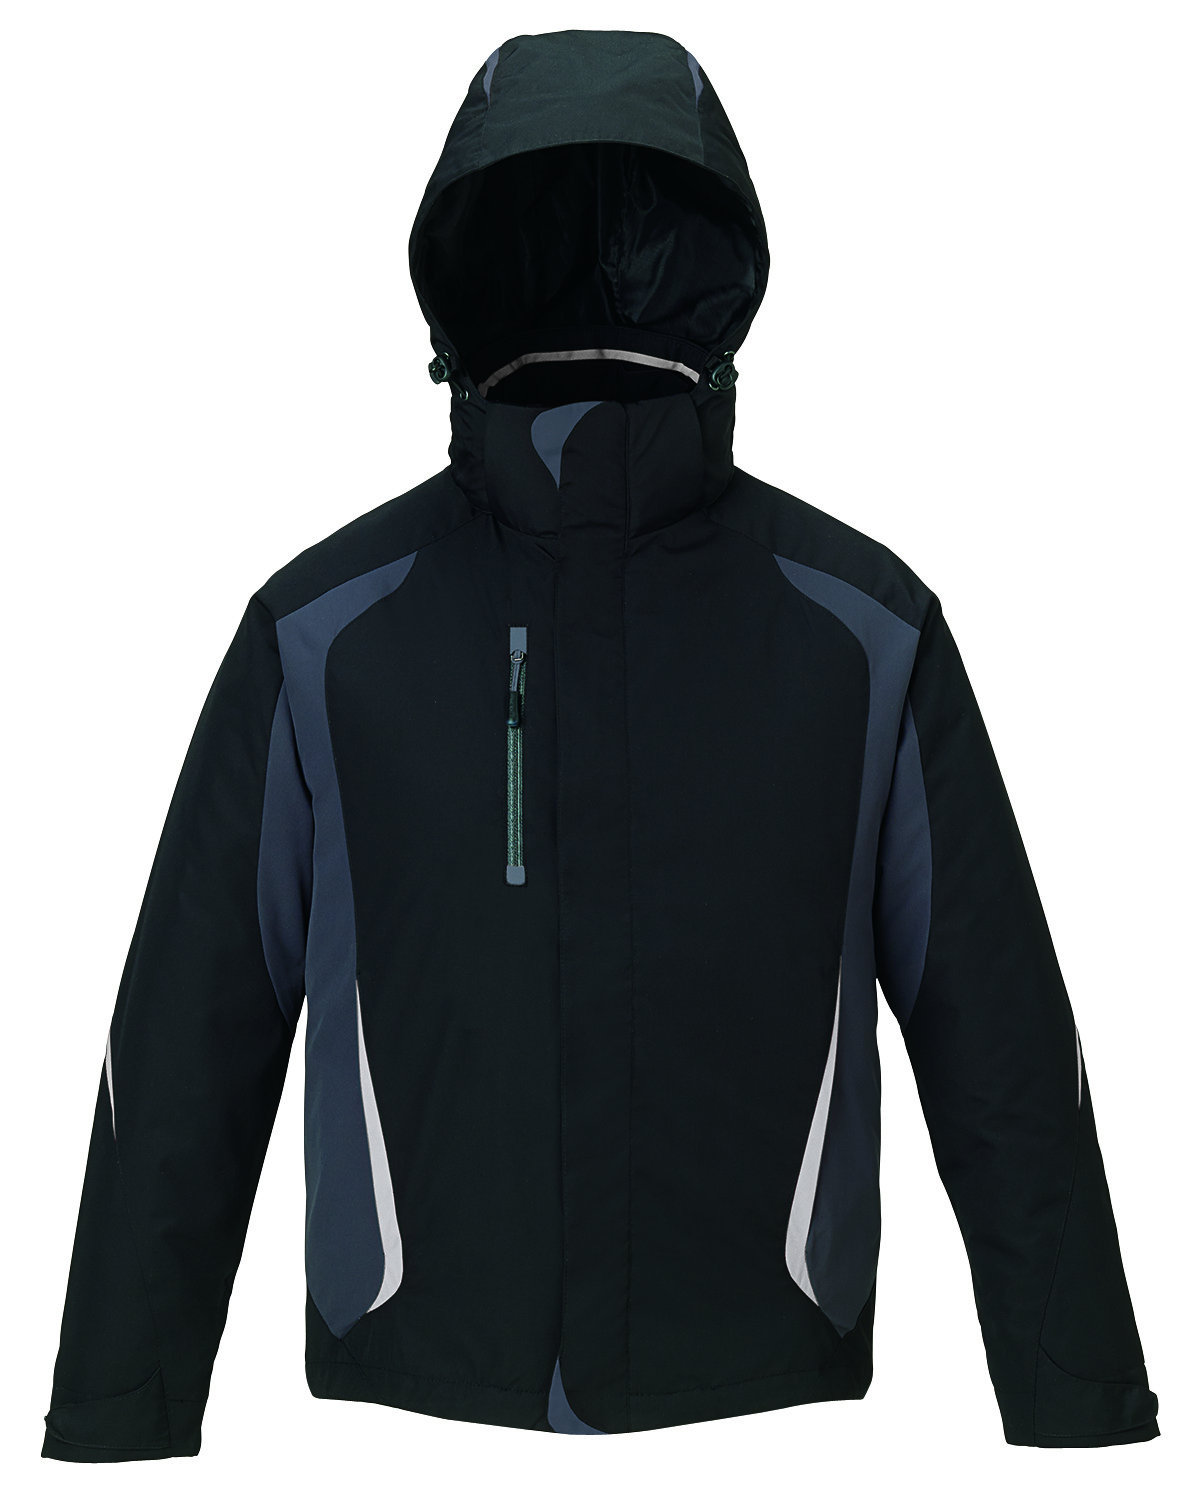 Ash City System Jackets 88195 - Height Men's 3-In-1 Jacket With Insulated Liner